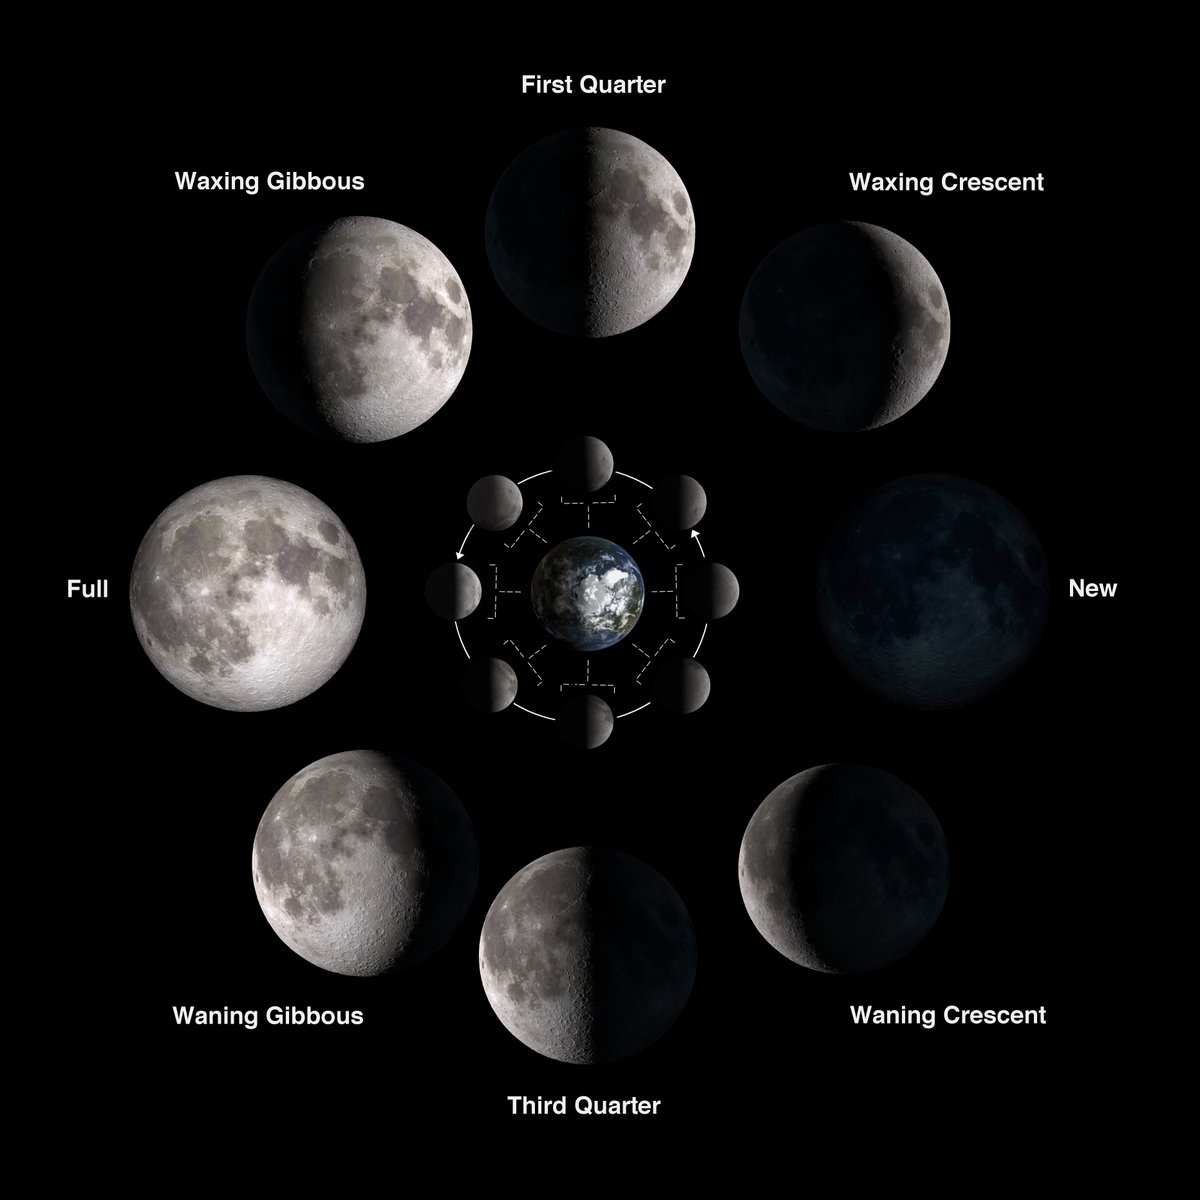 Today the Moon reaches its new phase, meaning it's not visible in the sky and a new monthly lunar cycle has begun. This month's new Moon also marks the first day of the #LunarNewYear. Learn all about the phases of the Moon: go.nasa.gov/2n23NSQ